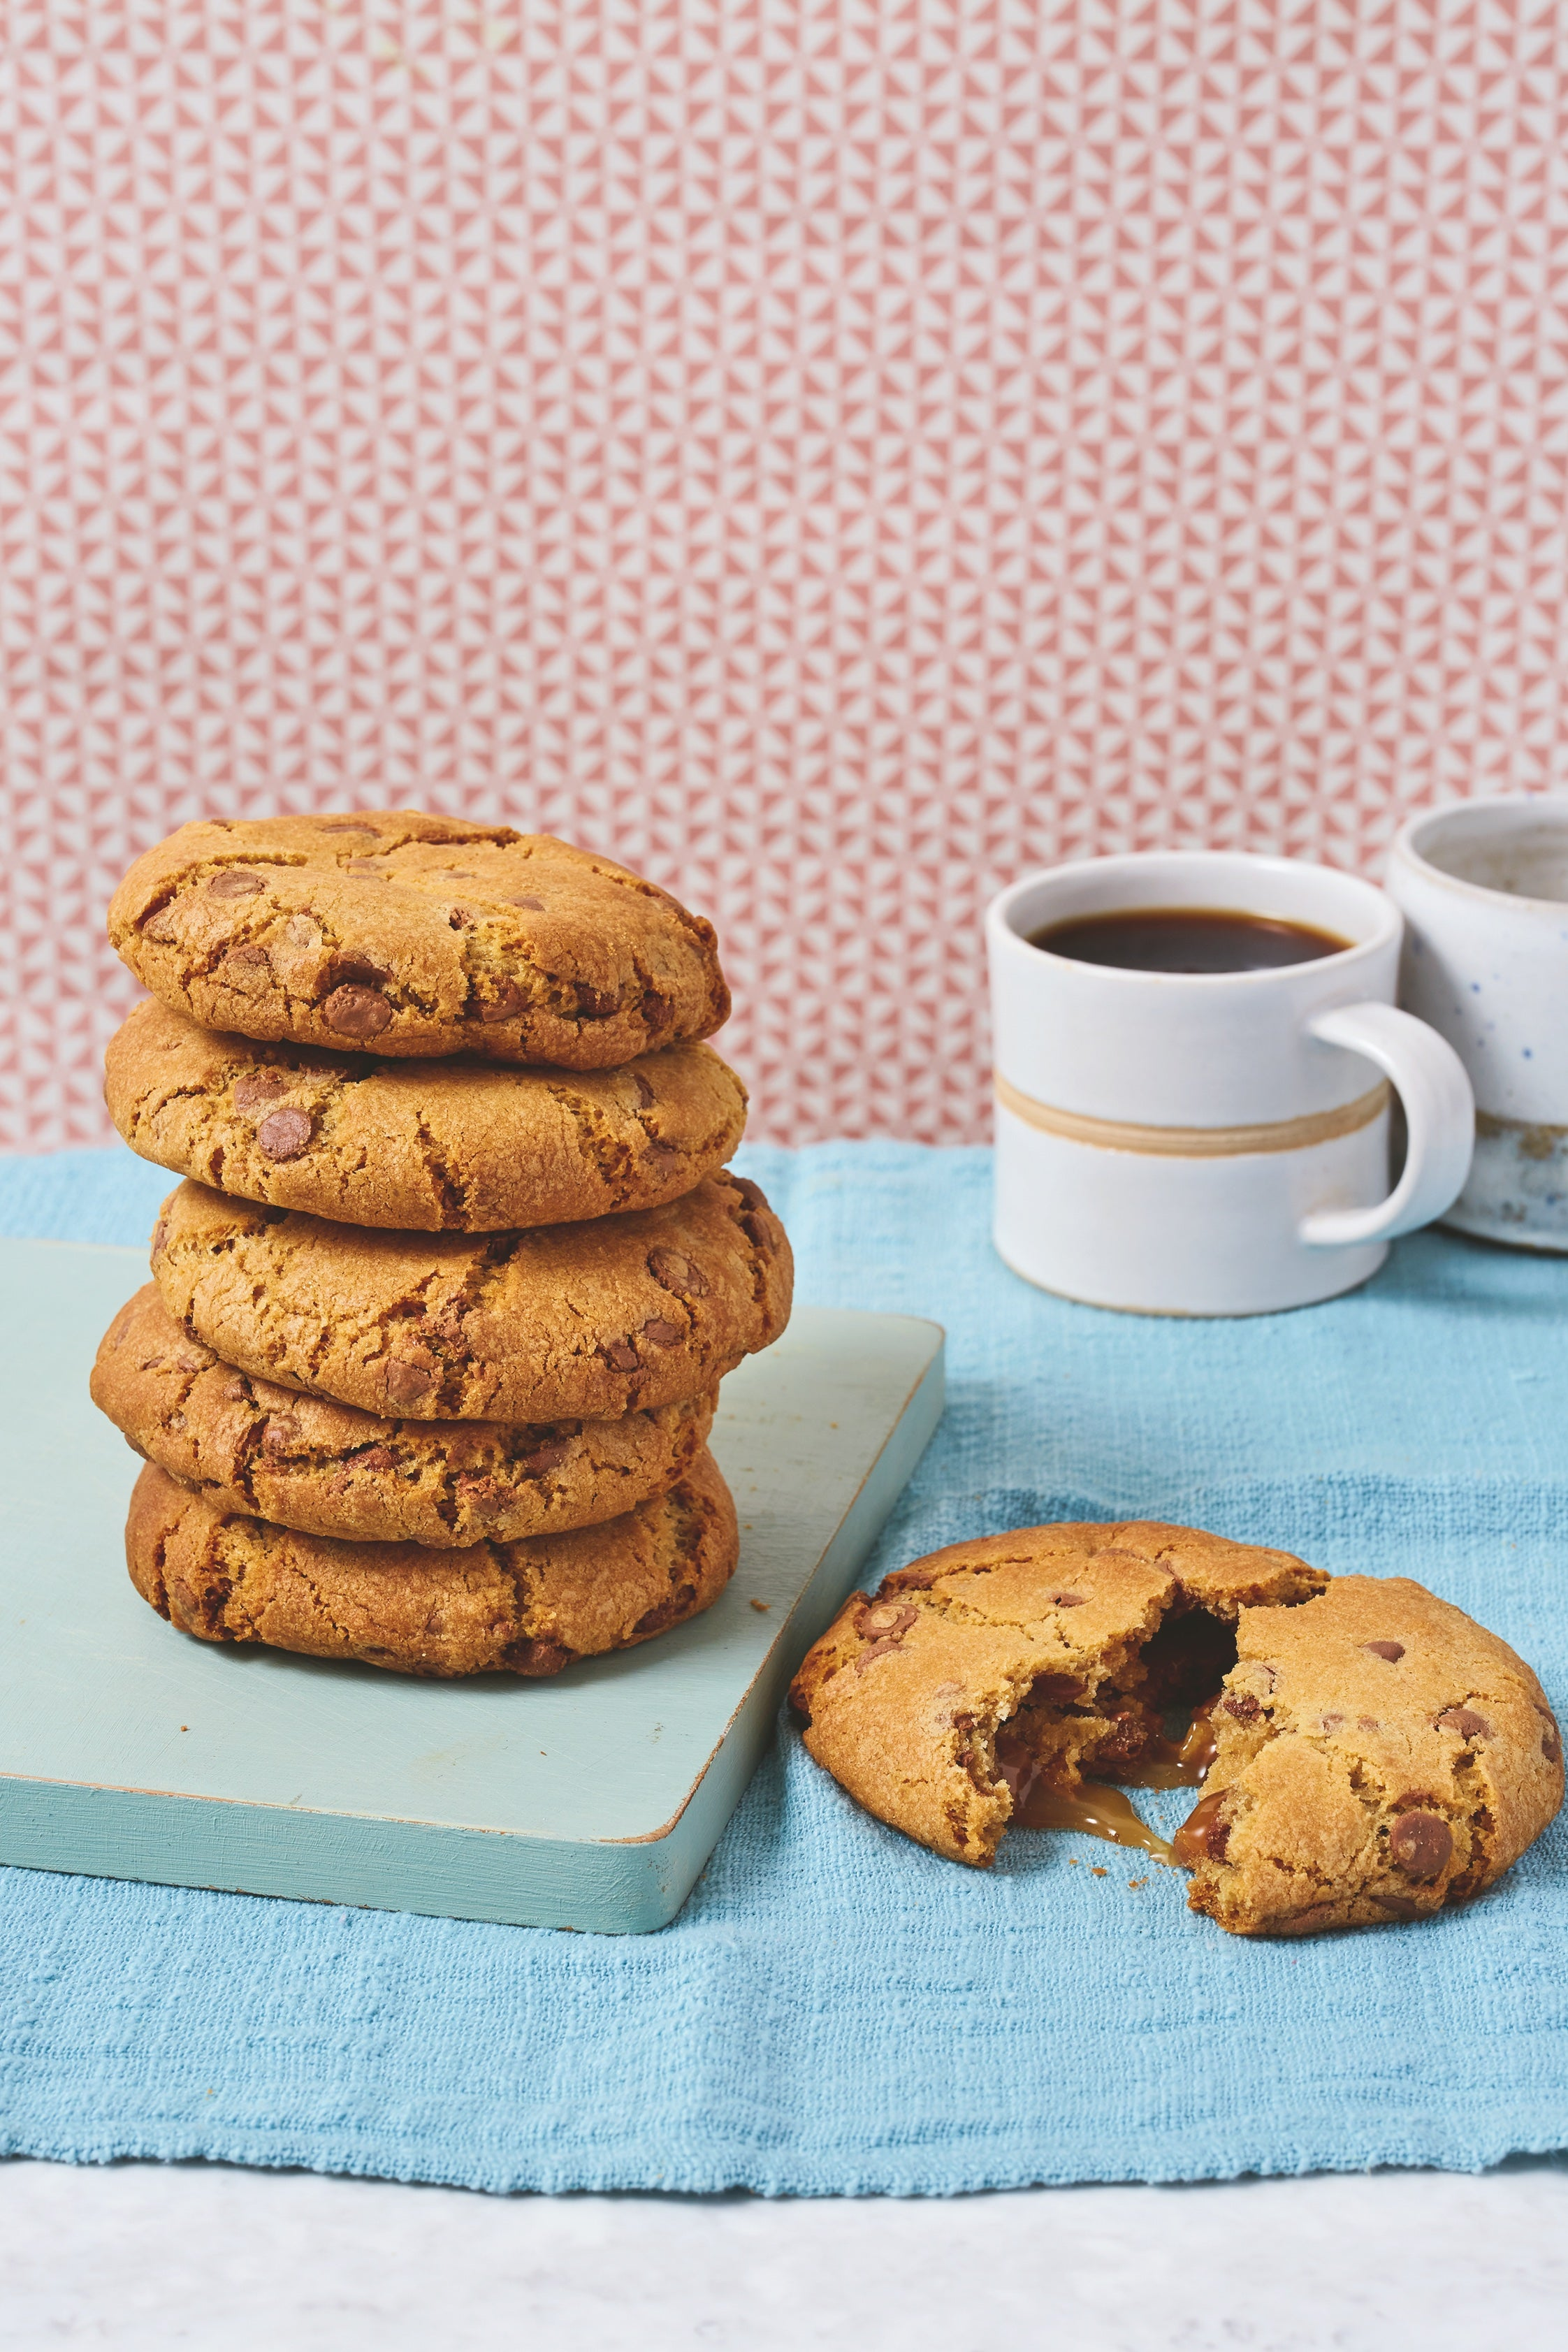 Stack of 5 cookies and one pulled open in front with caramel centre. Cup of coffee in background